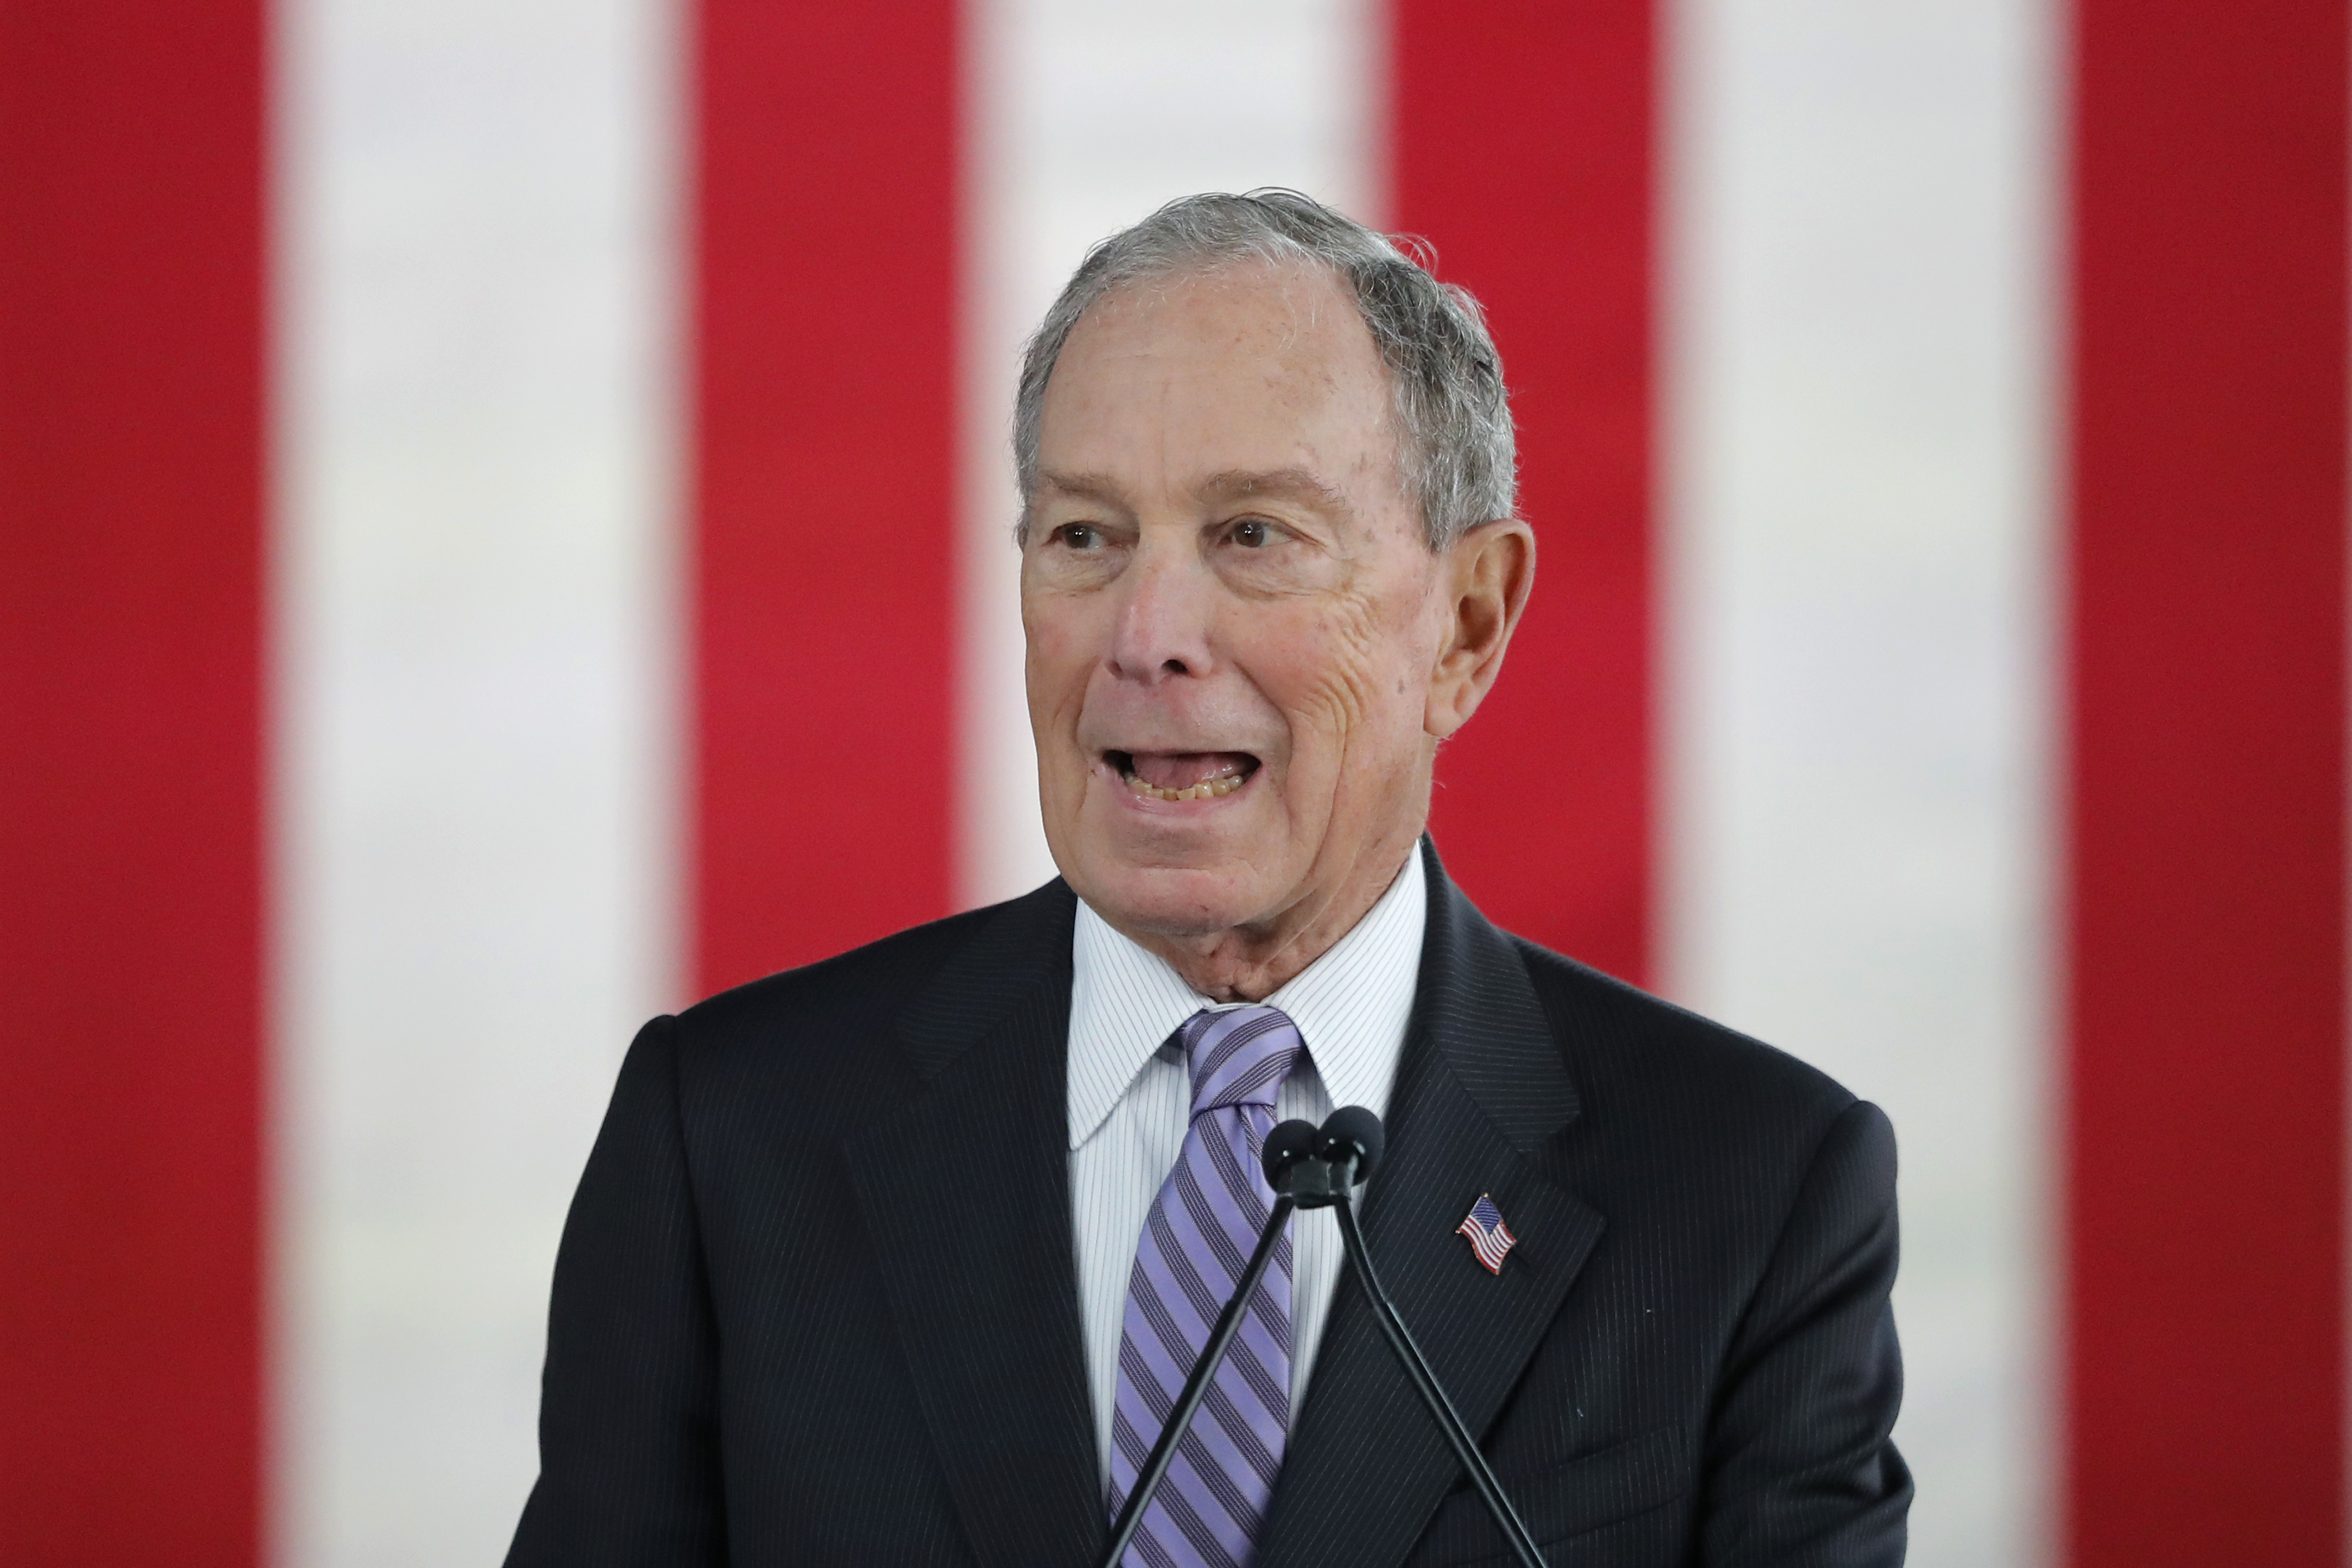 Virginia a key state in Bloomberg's Super Tuesday strategy